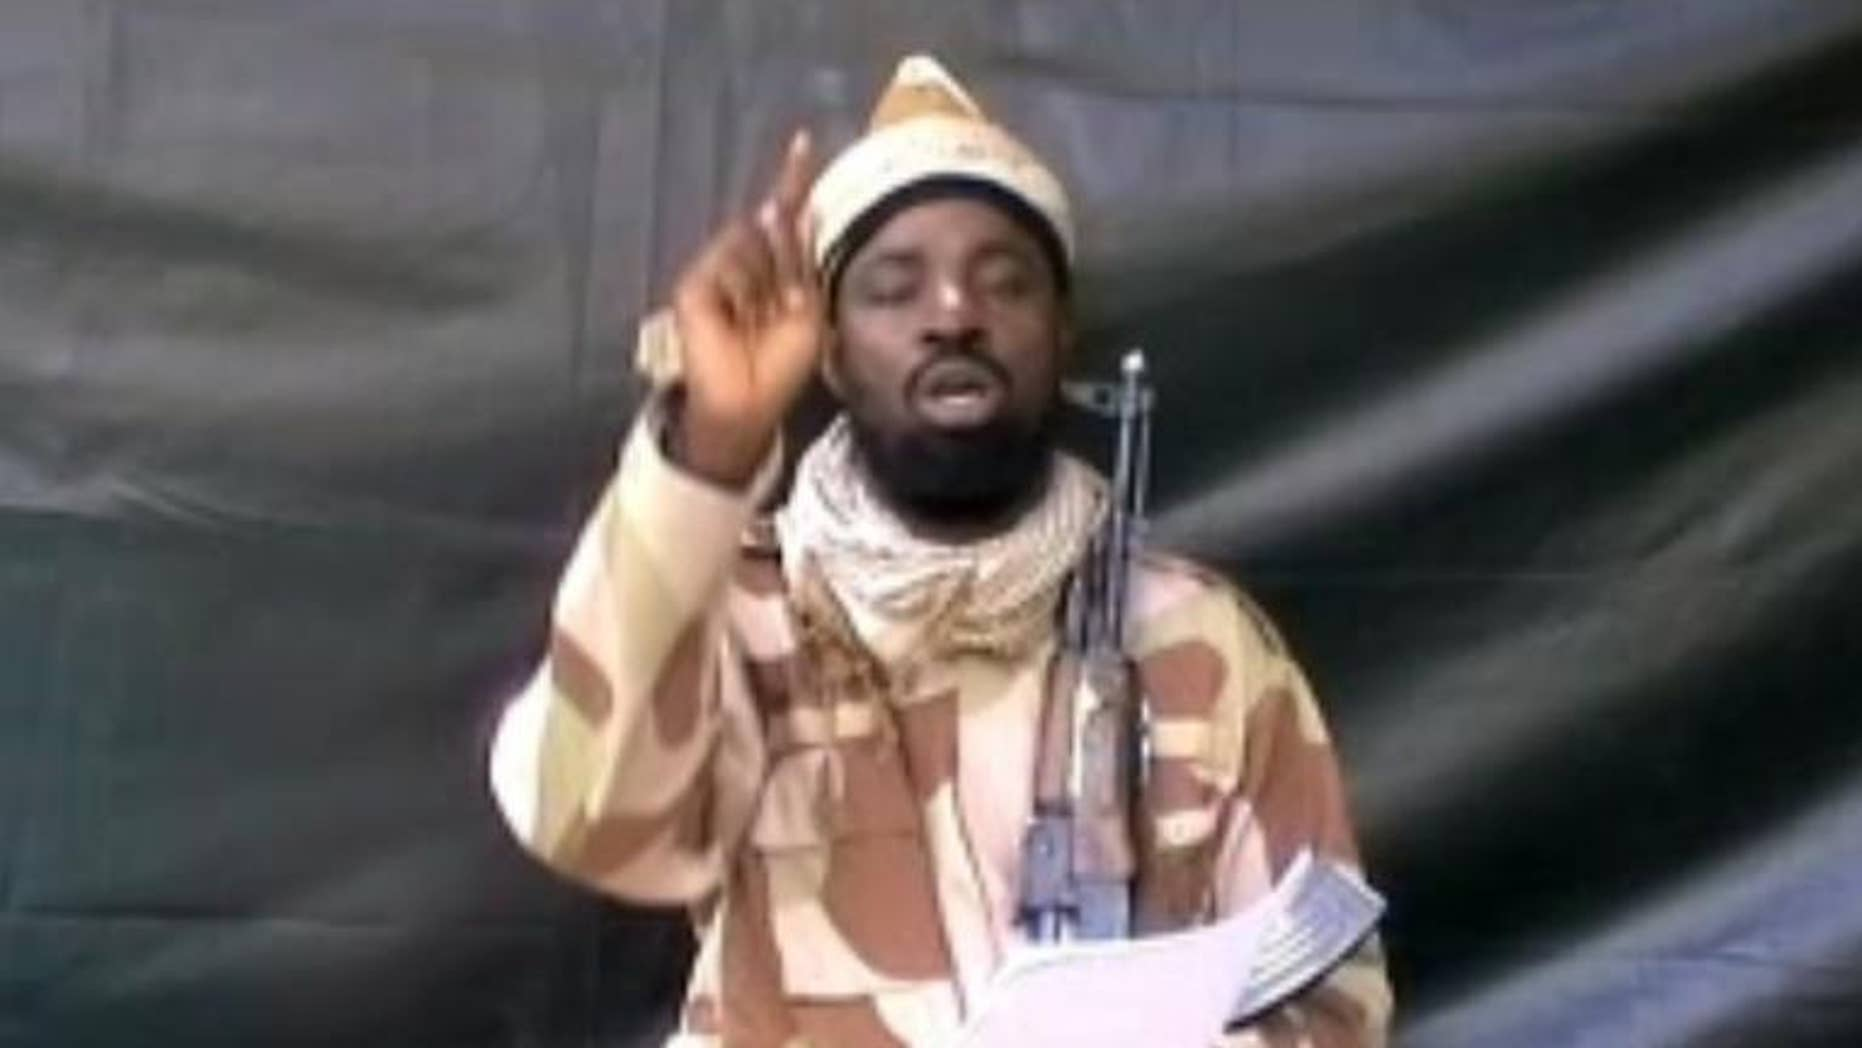 A grab made on July 13, 2013 from a video obtained by AFP shows the leader of the Islamist extremist group Boko Haram Abubakar Shekau